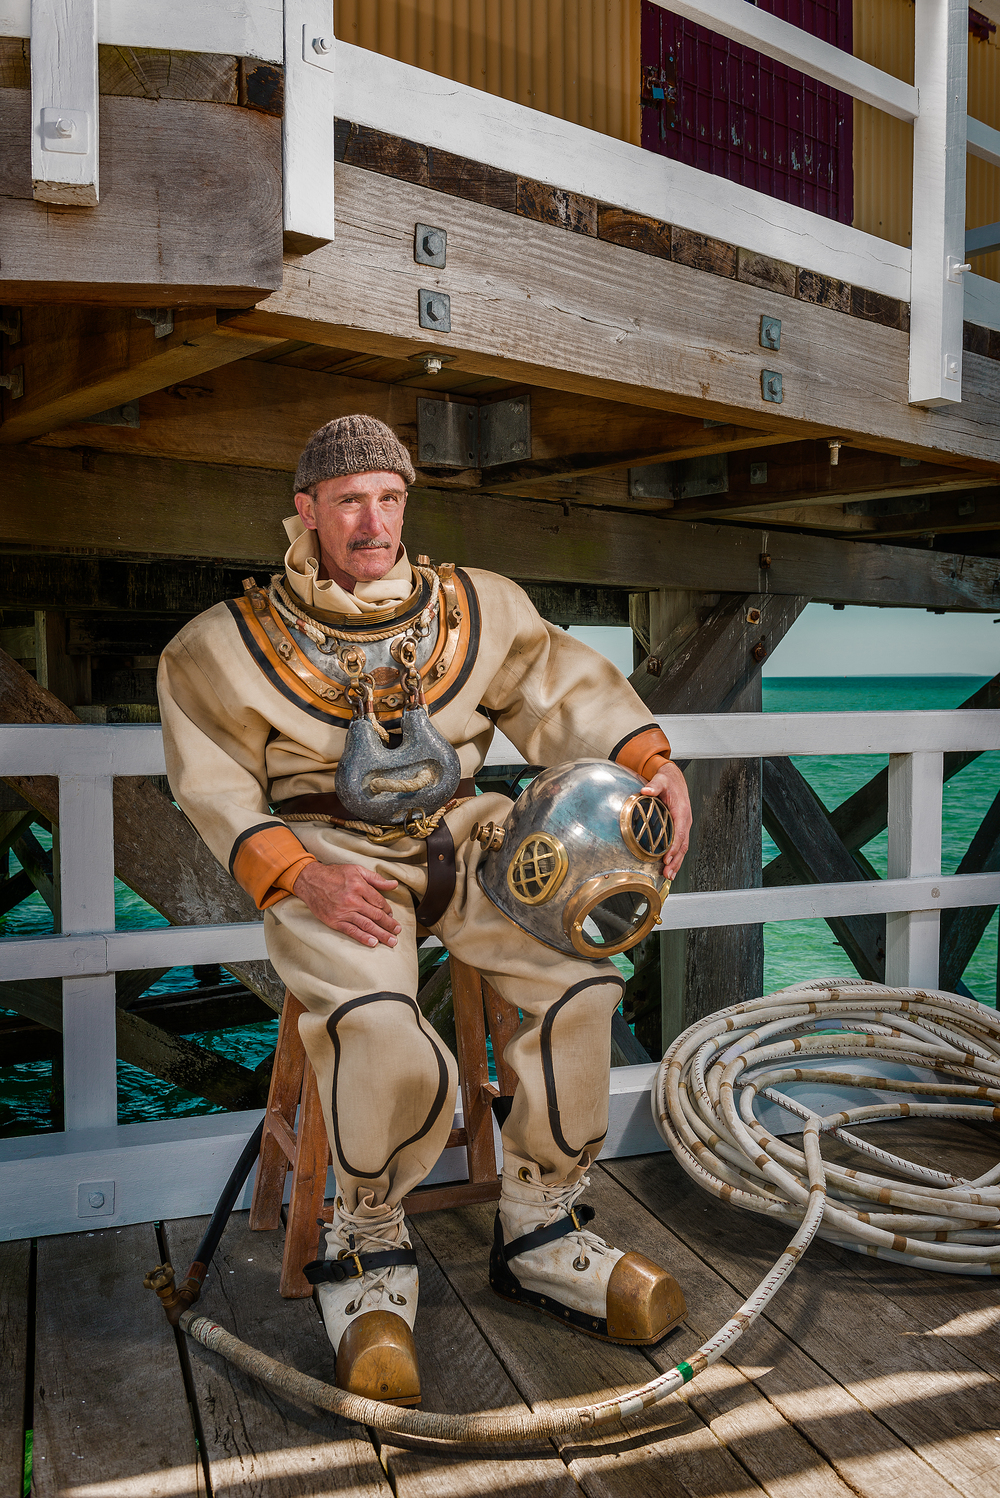 Standard Dress Diving Suit with Warren Jackman